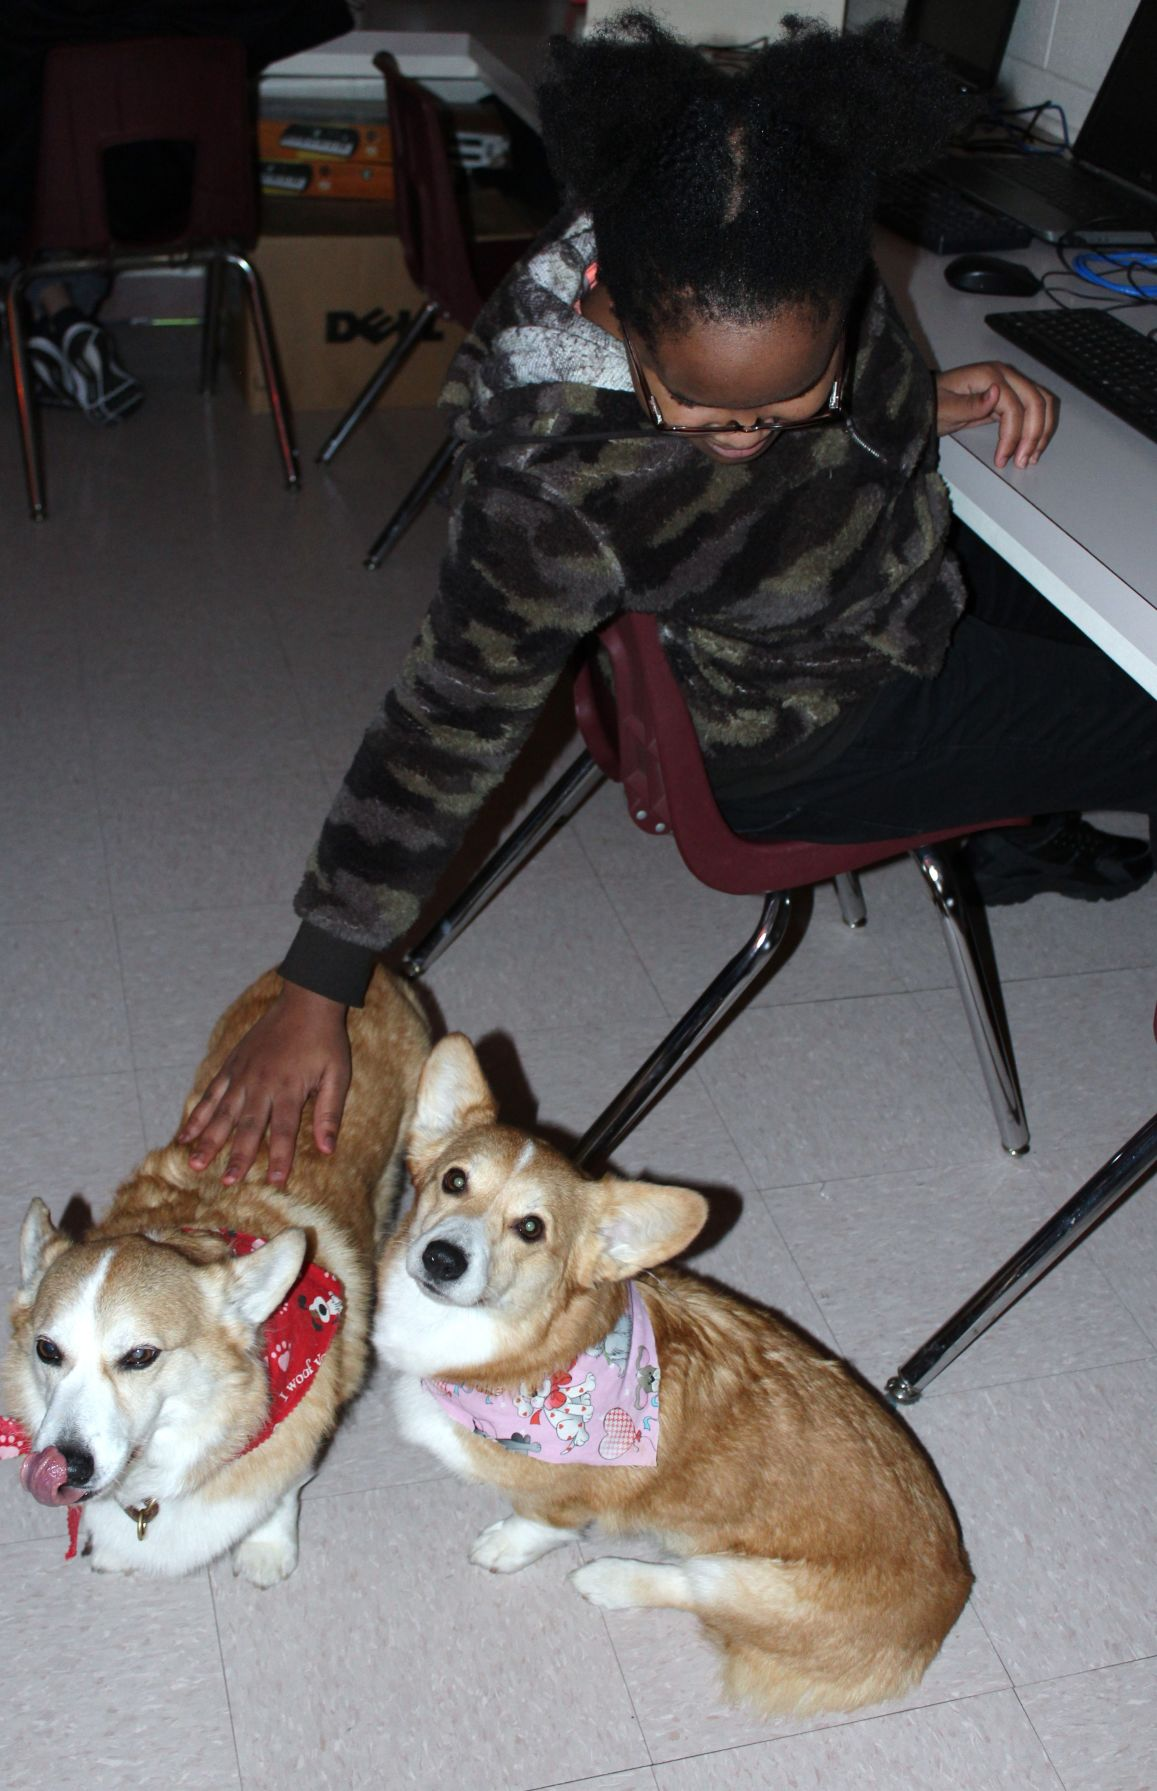 Corgis in the classroom: J.T. Alton teacher brings furry friends to help comfort students